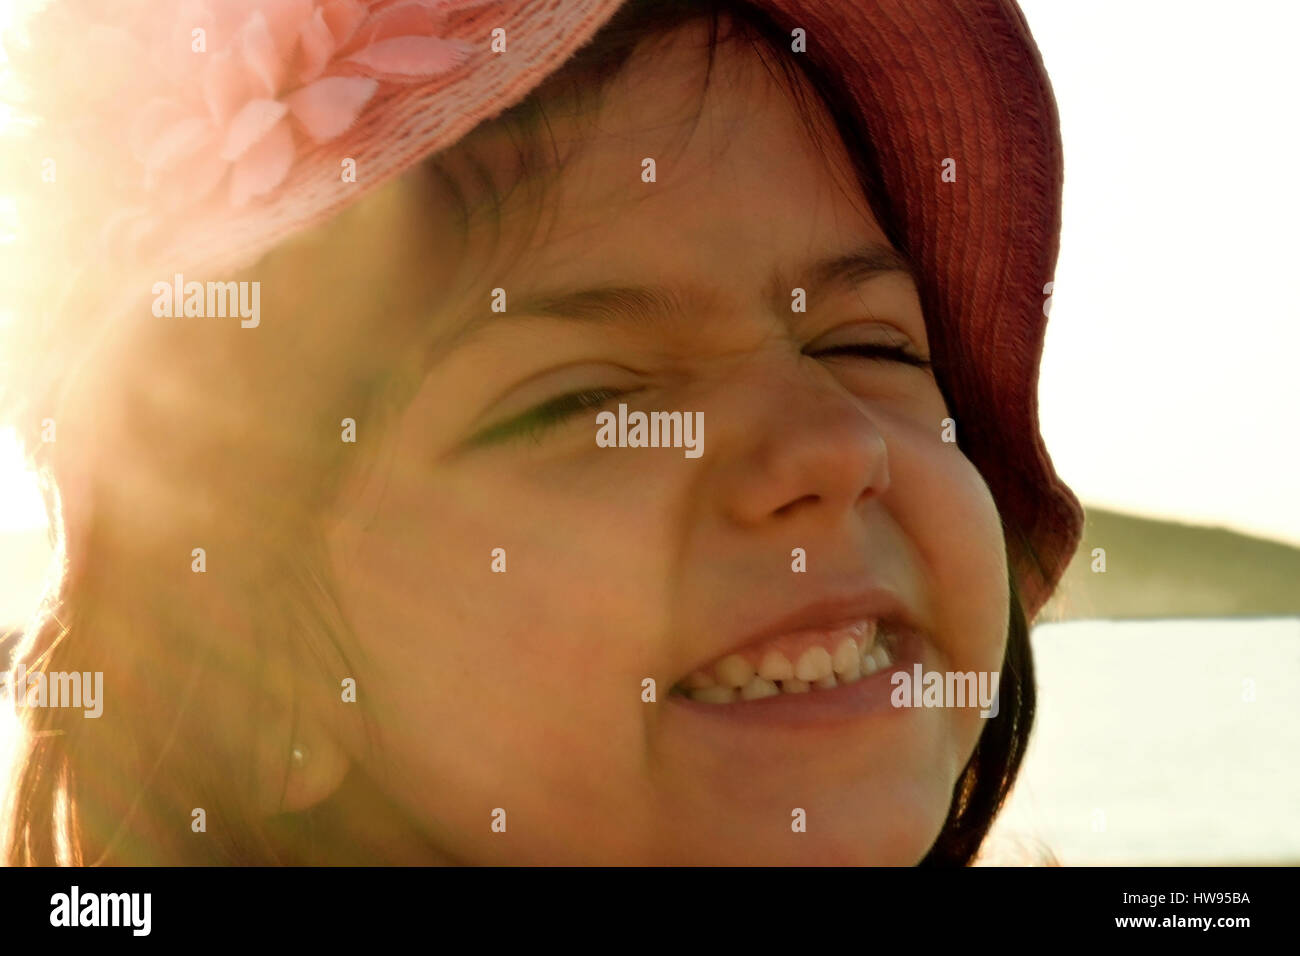 Funny face of a happy little girl - Stock Image